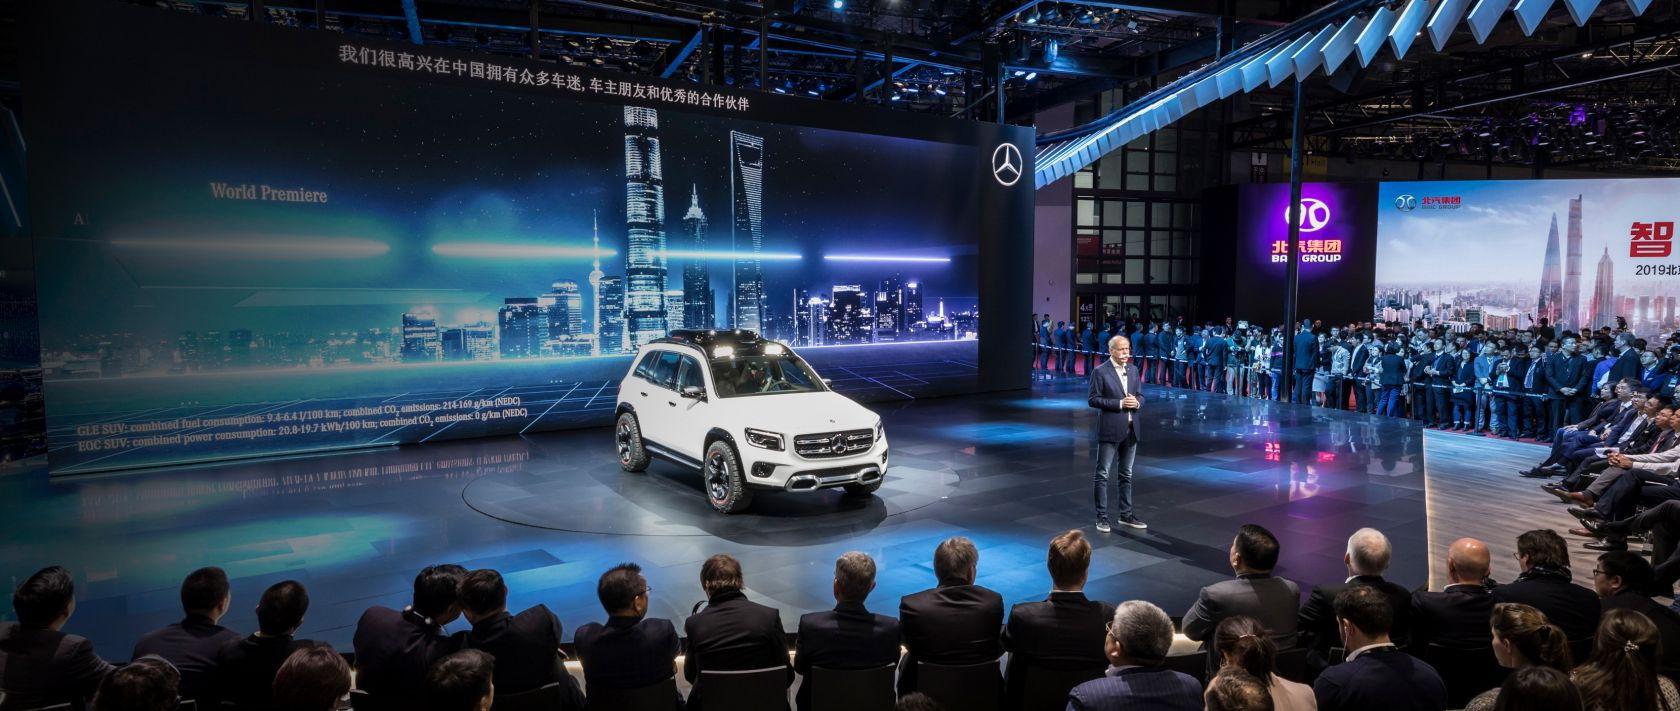 With the Concept GLB, Dieter Zetsche, CEO of Daimler AG and Head of Mercedes-Benz Cars, presented an SUV idea based on the compact car platform at the 18th Auto Shanghai.